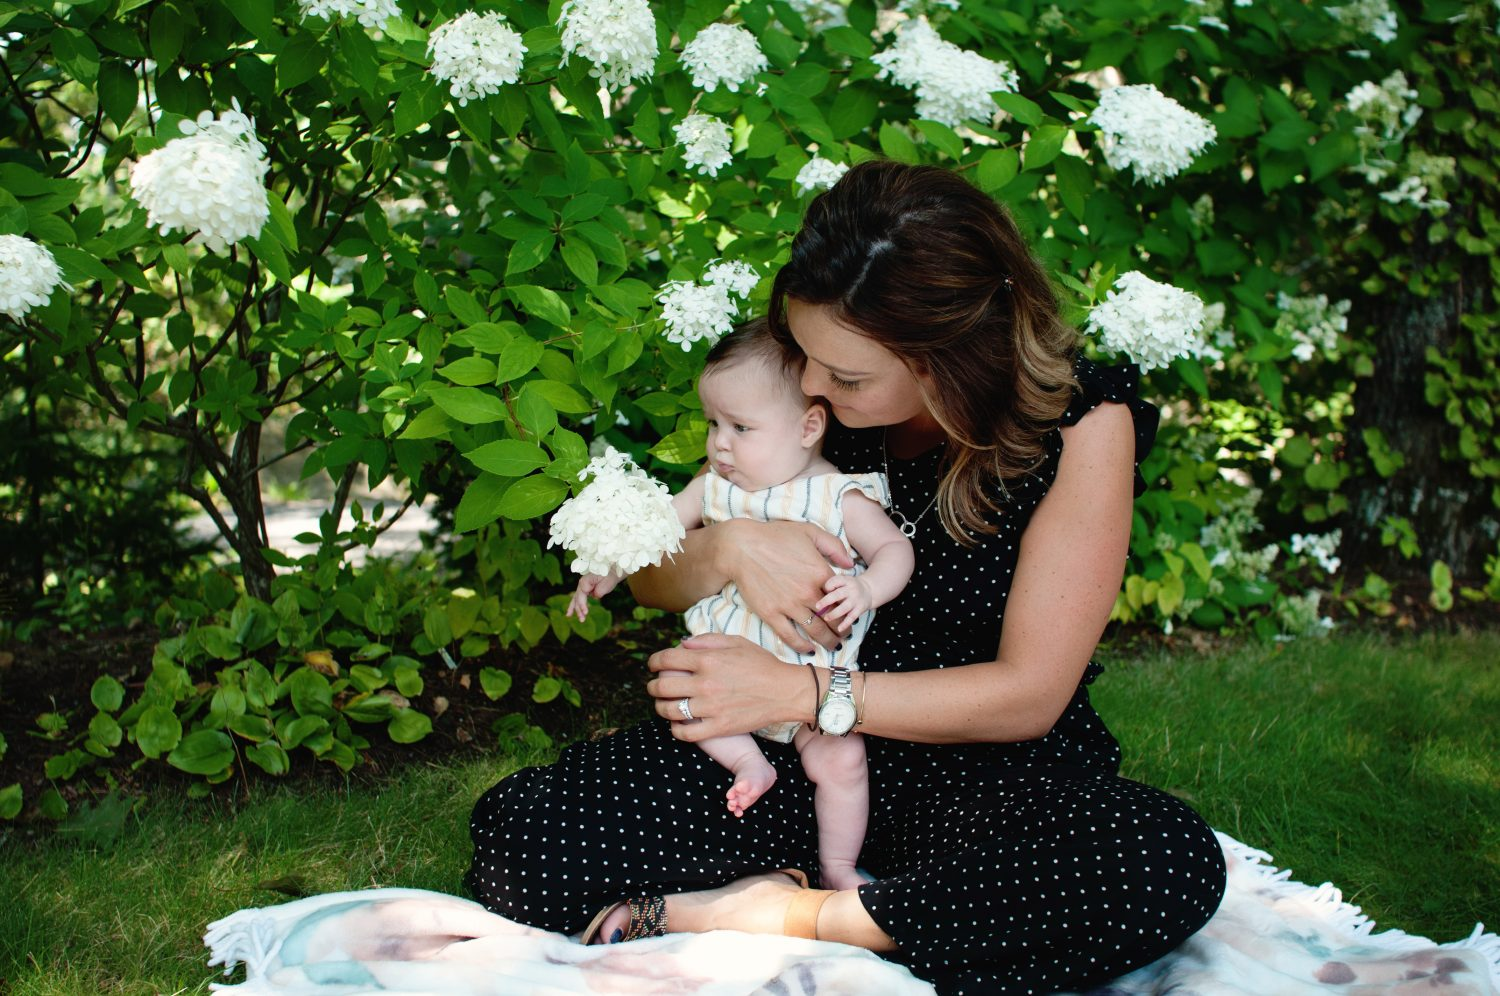 mother holding baby daughter while sitting in grass looking at HYDRANGEAS